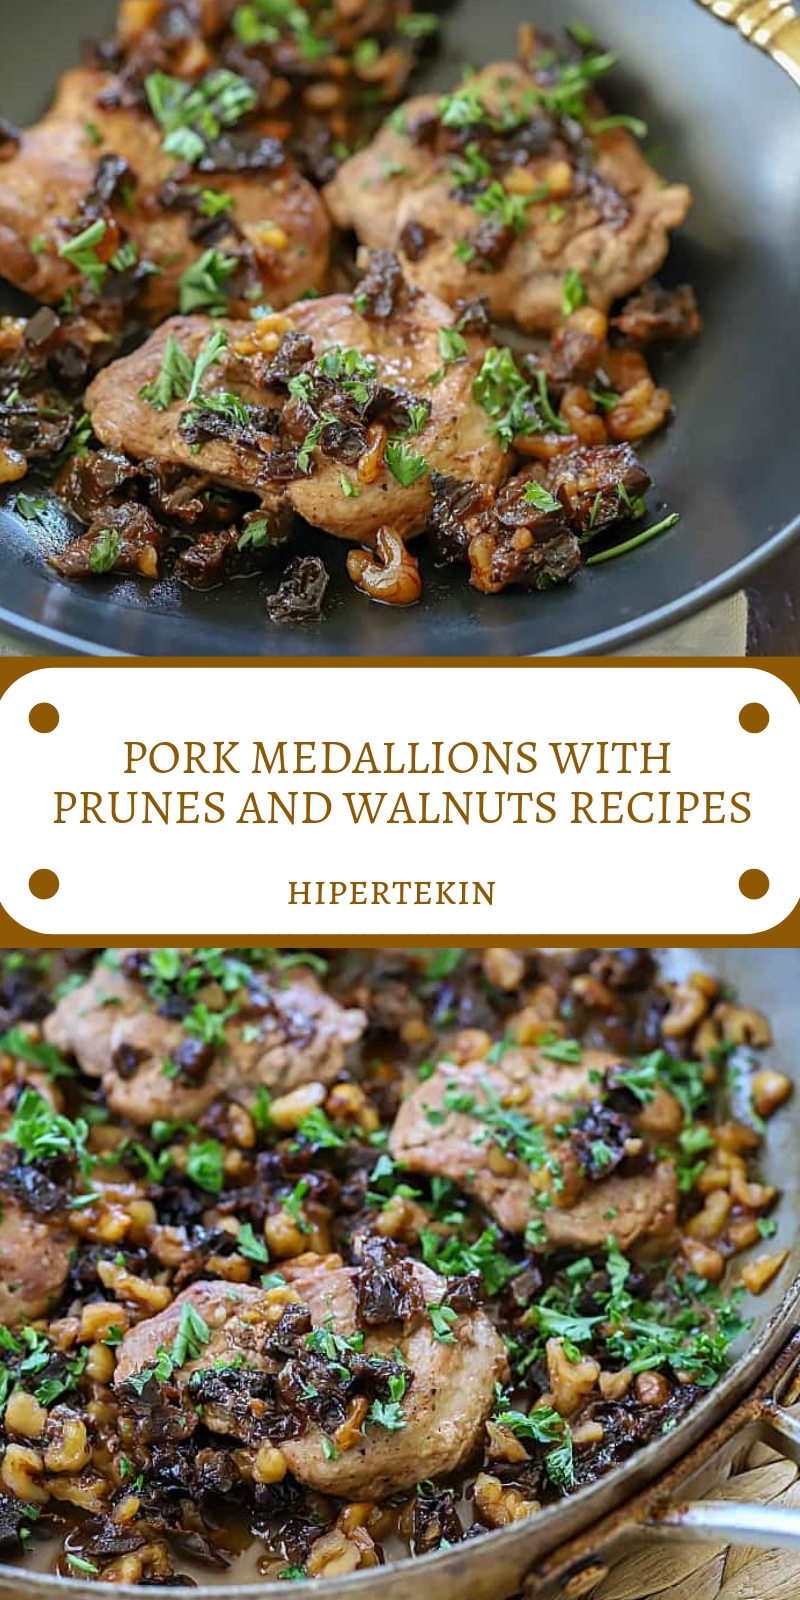 PORK MEDALLIONS WITH PRUNES AND WALNUTS RECIPES